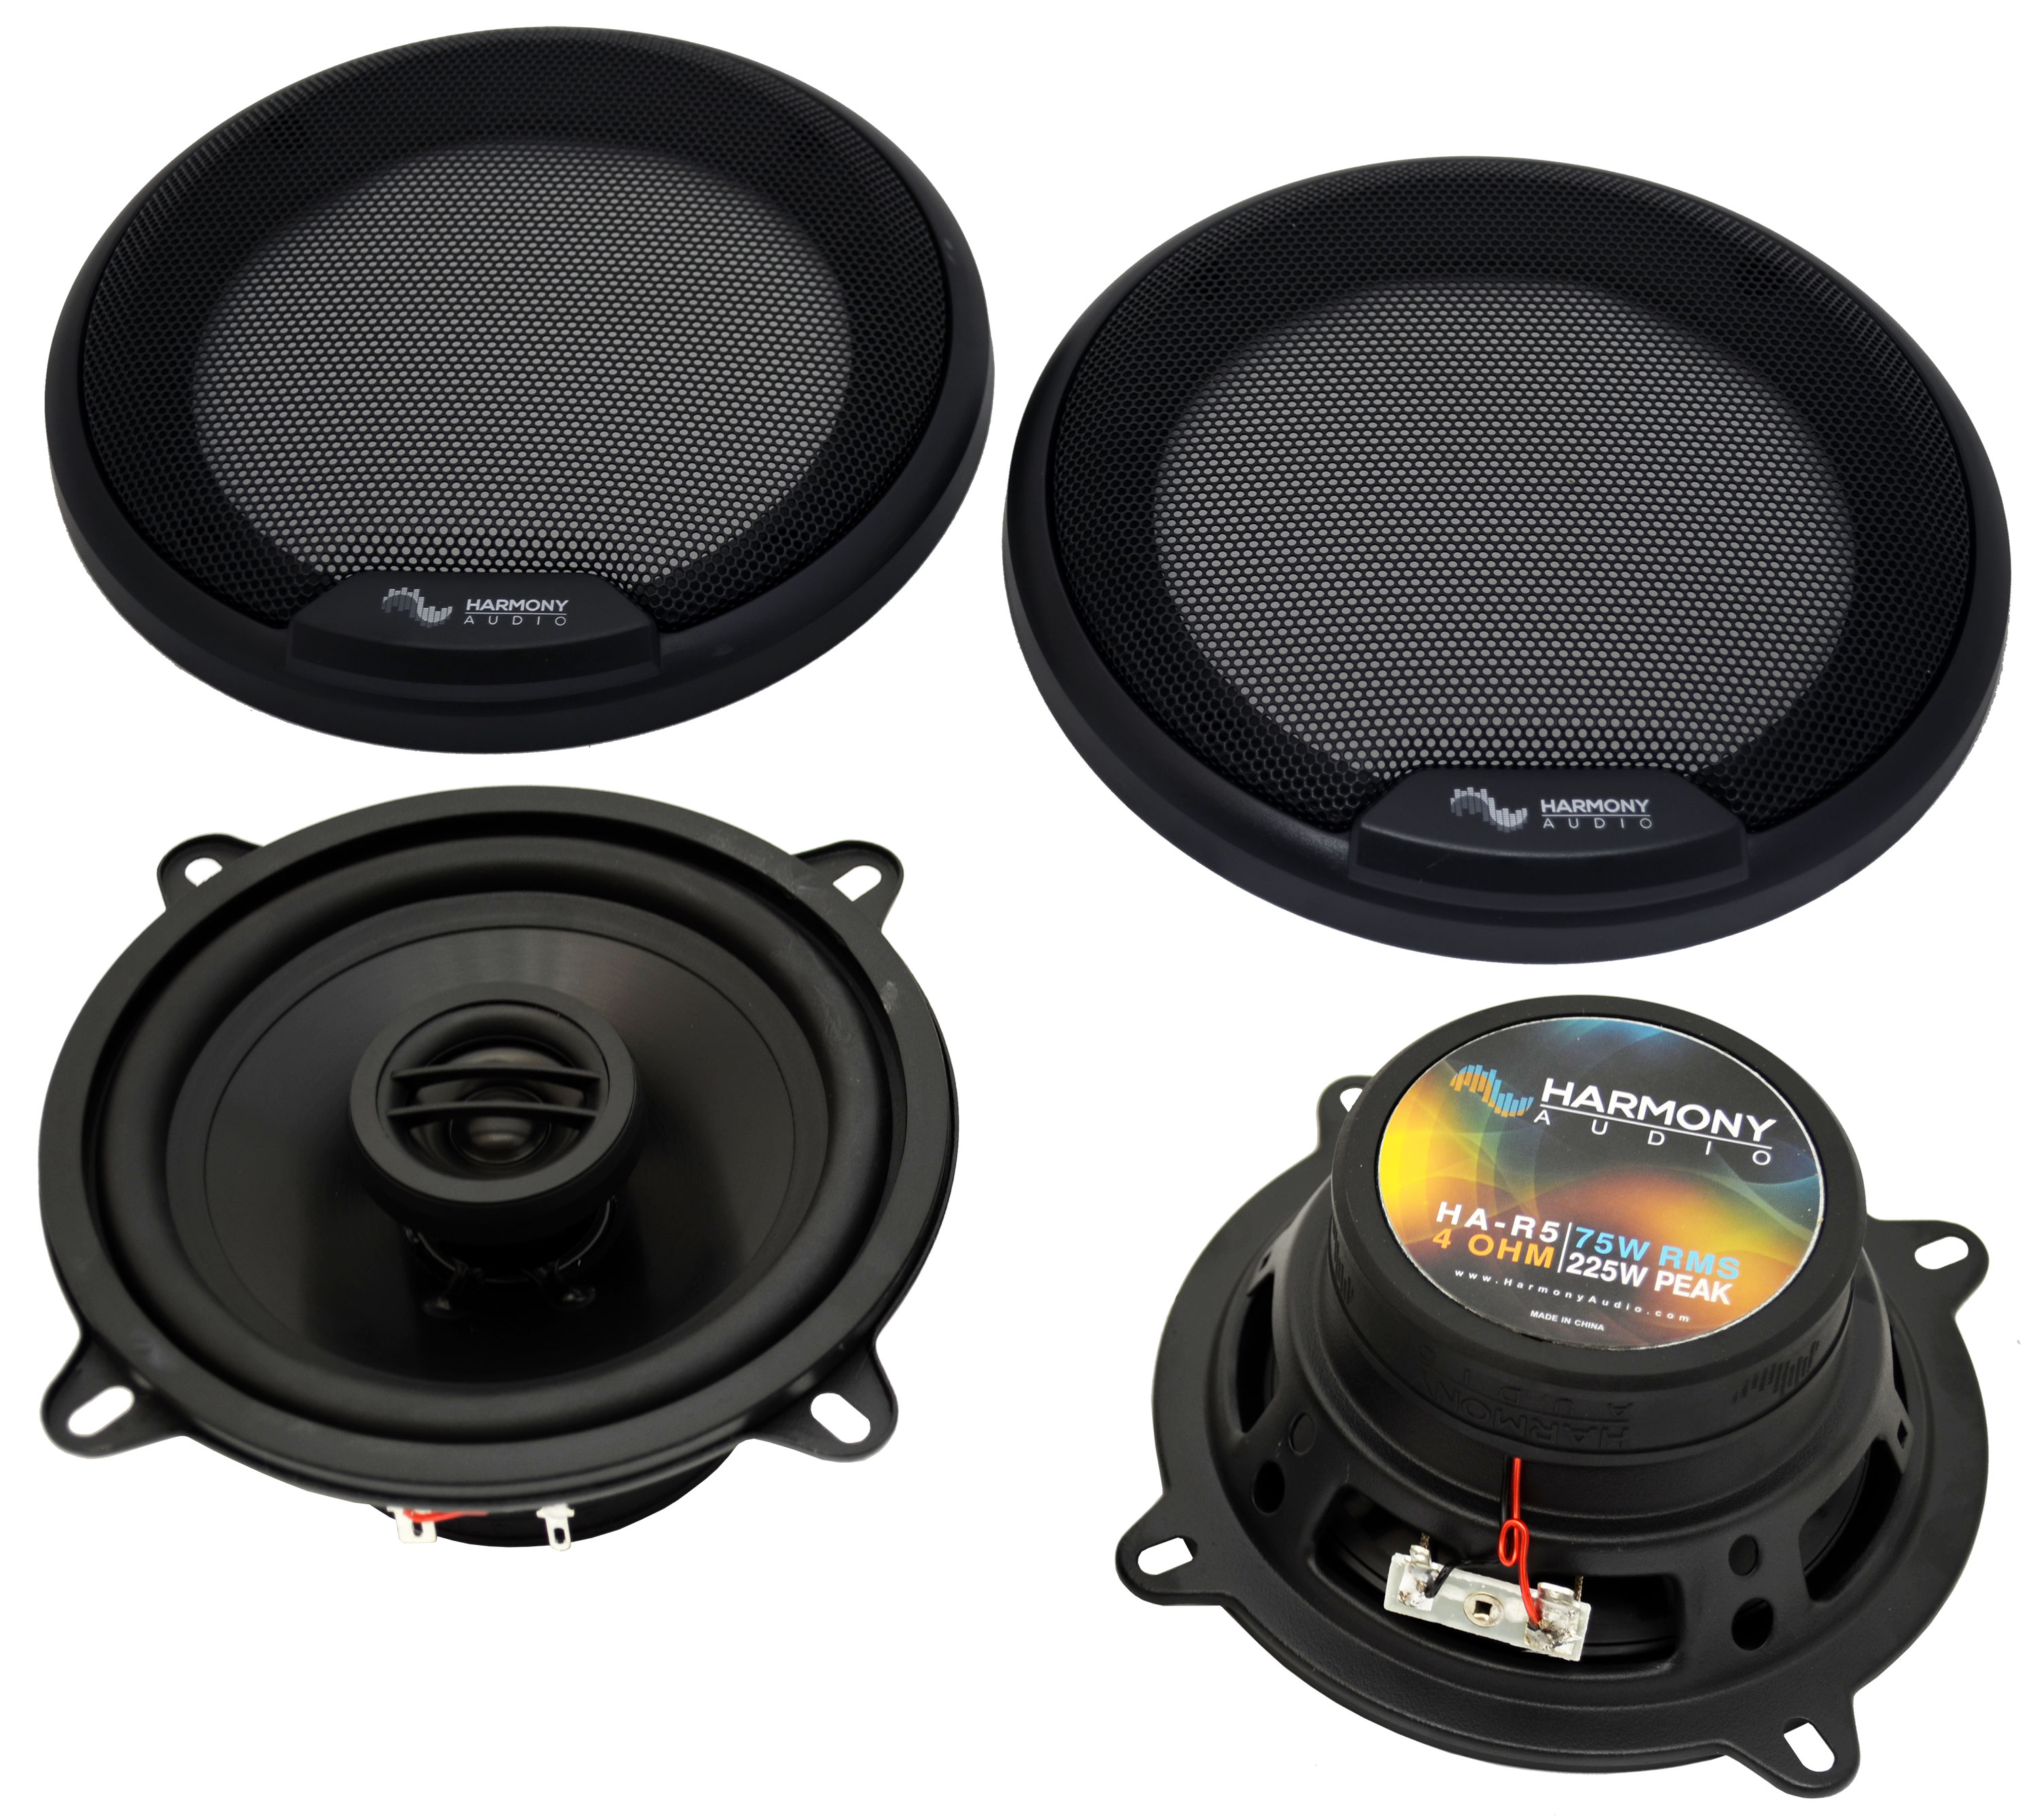 Fits Jaguar XJ 1986-2005 Rear Door Replacement Harmony Speaker HA-R5 Speakers